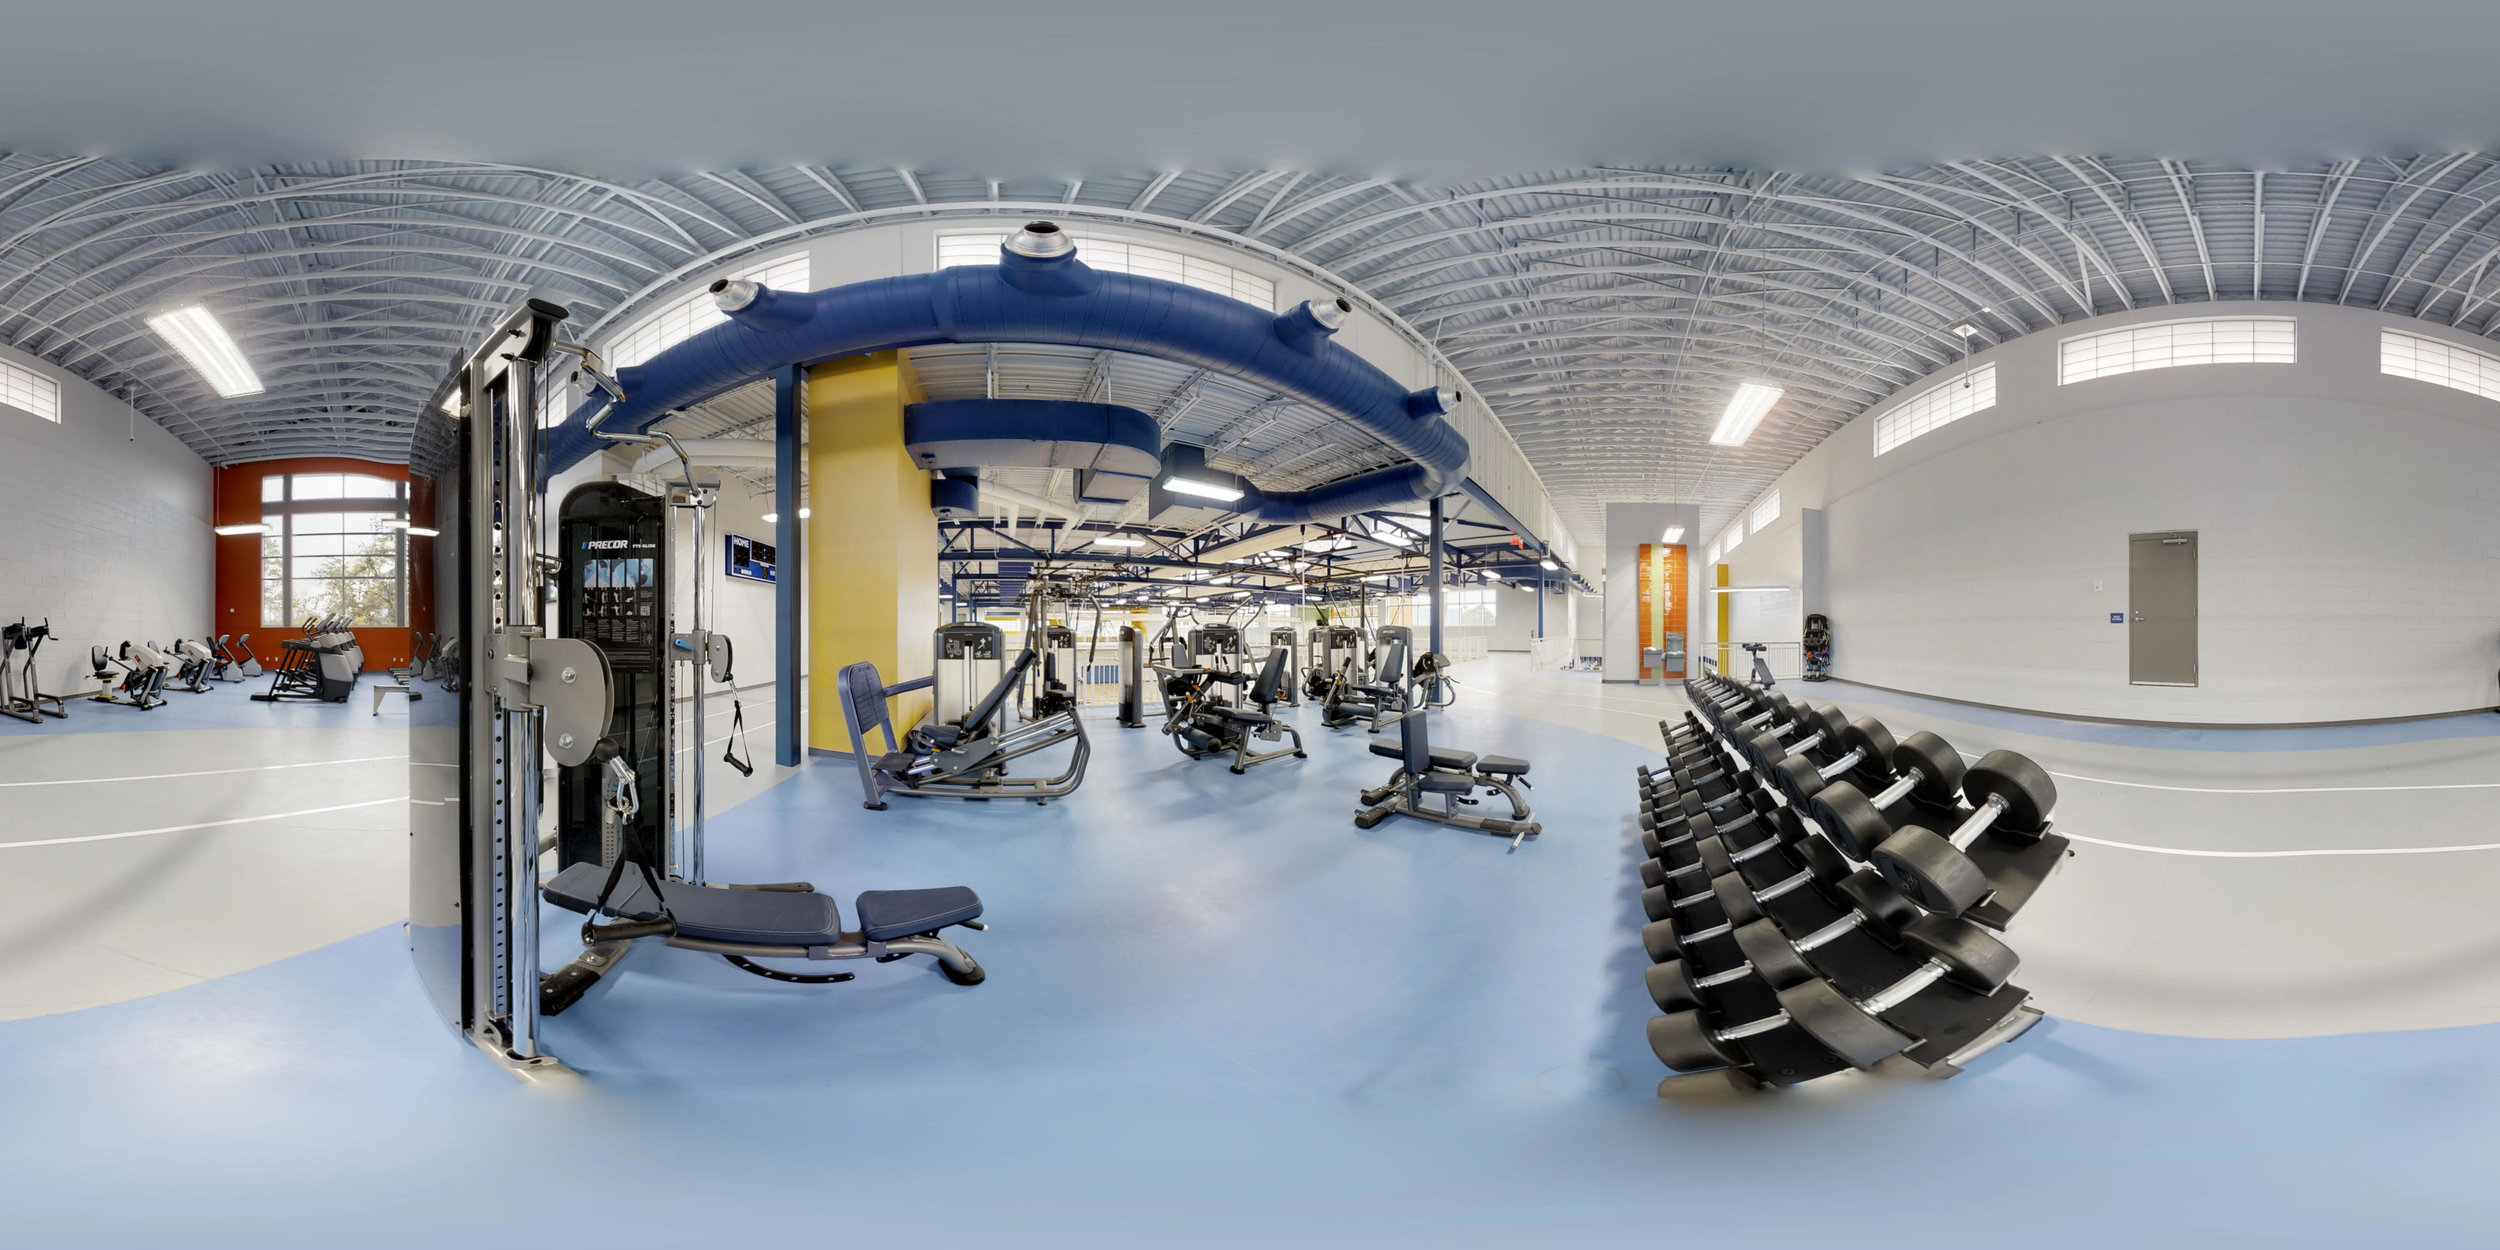 Take a tour - Welcome to the new and improved Island Recreation Center